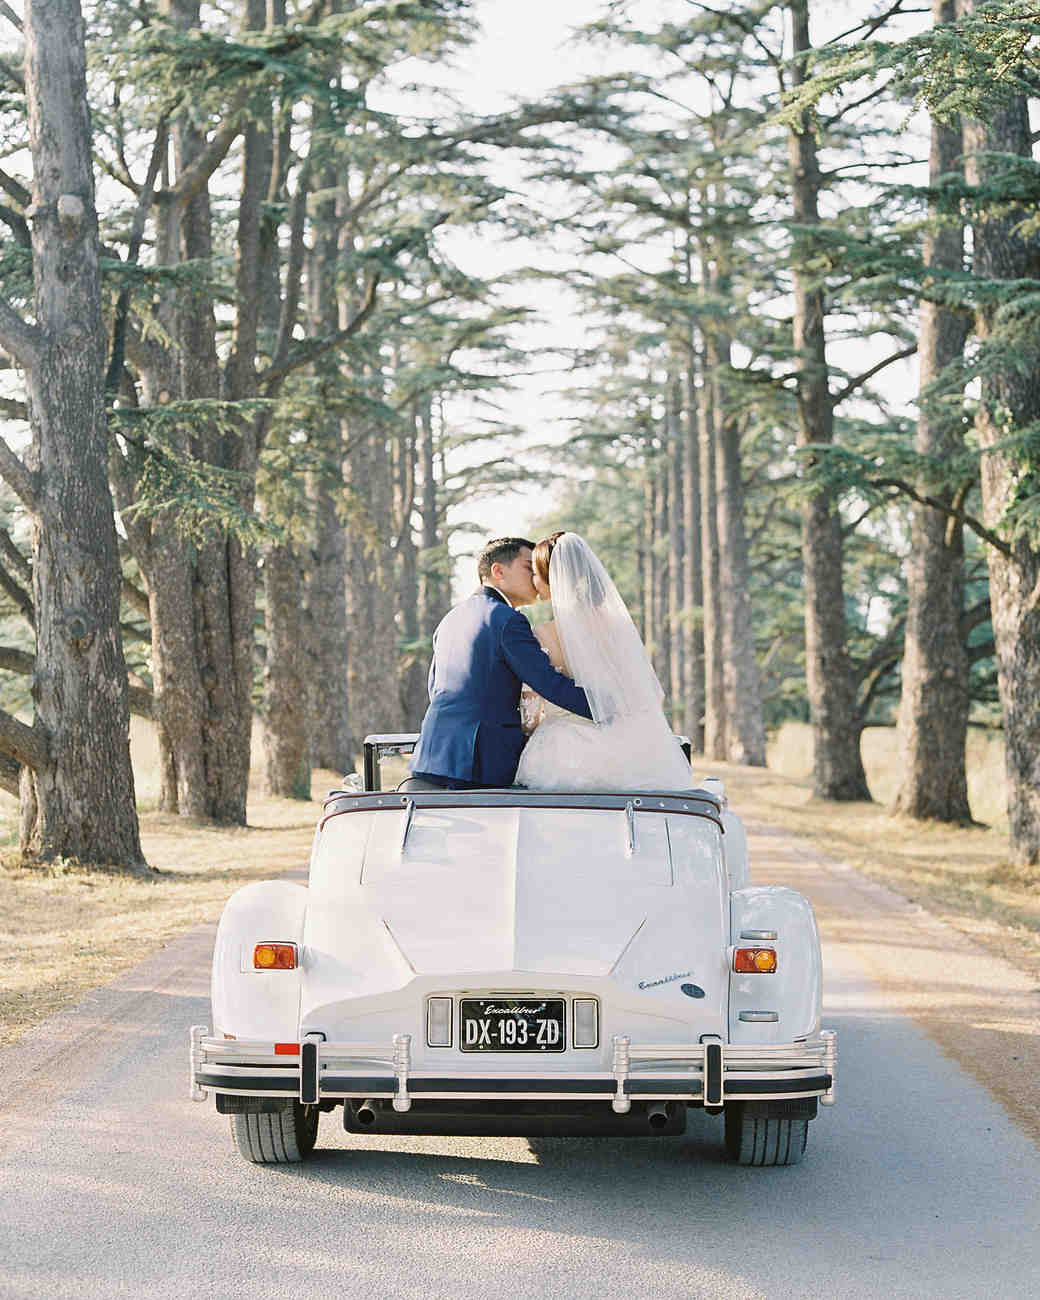 janet patrick wedding couple in vintage car